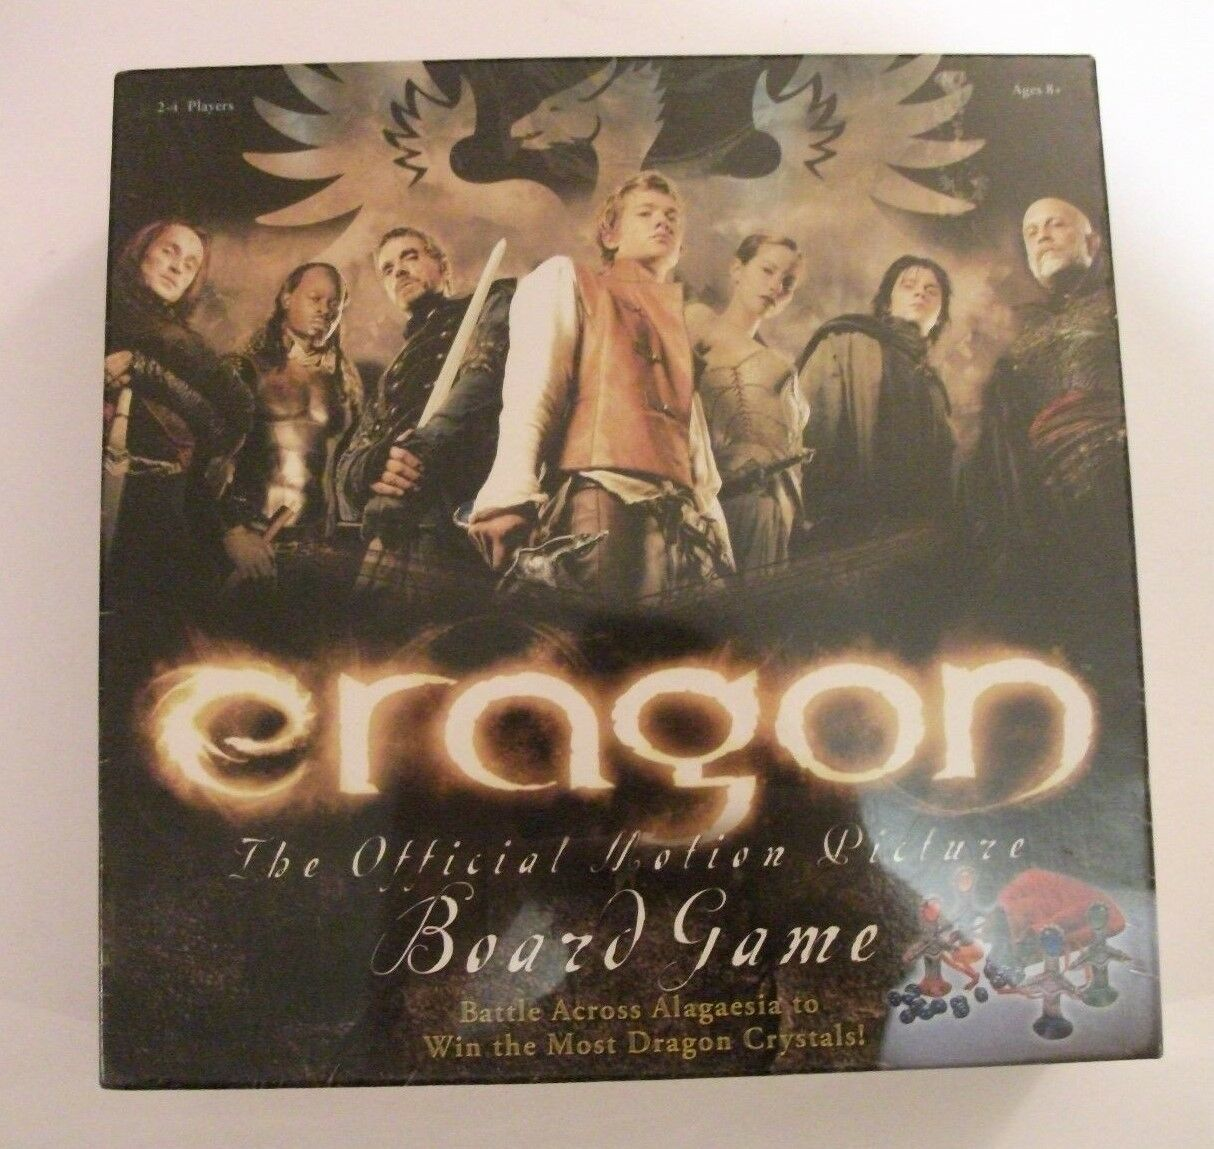 ERAGON THE OFFICIAL OFFICIAL OFFICIAL MOTION PICTURE BOARDGAME BRAND NEW SEALED FREE P&P 5c2138